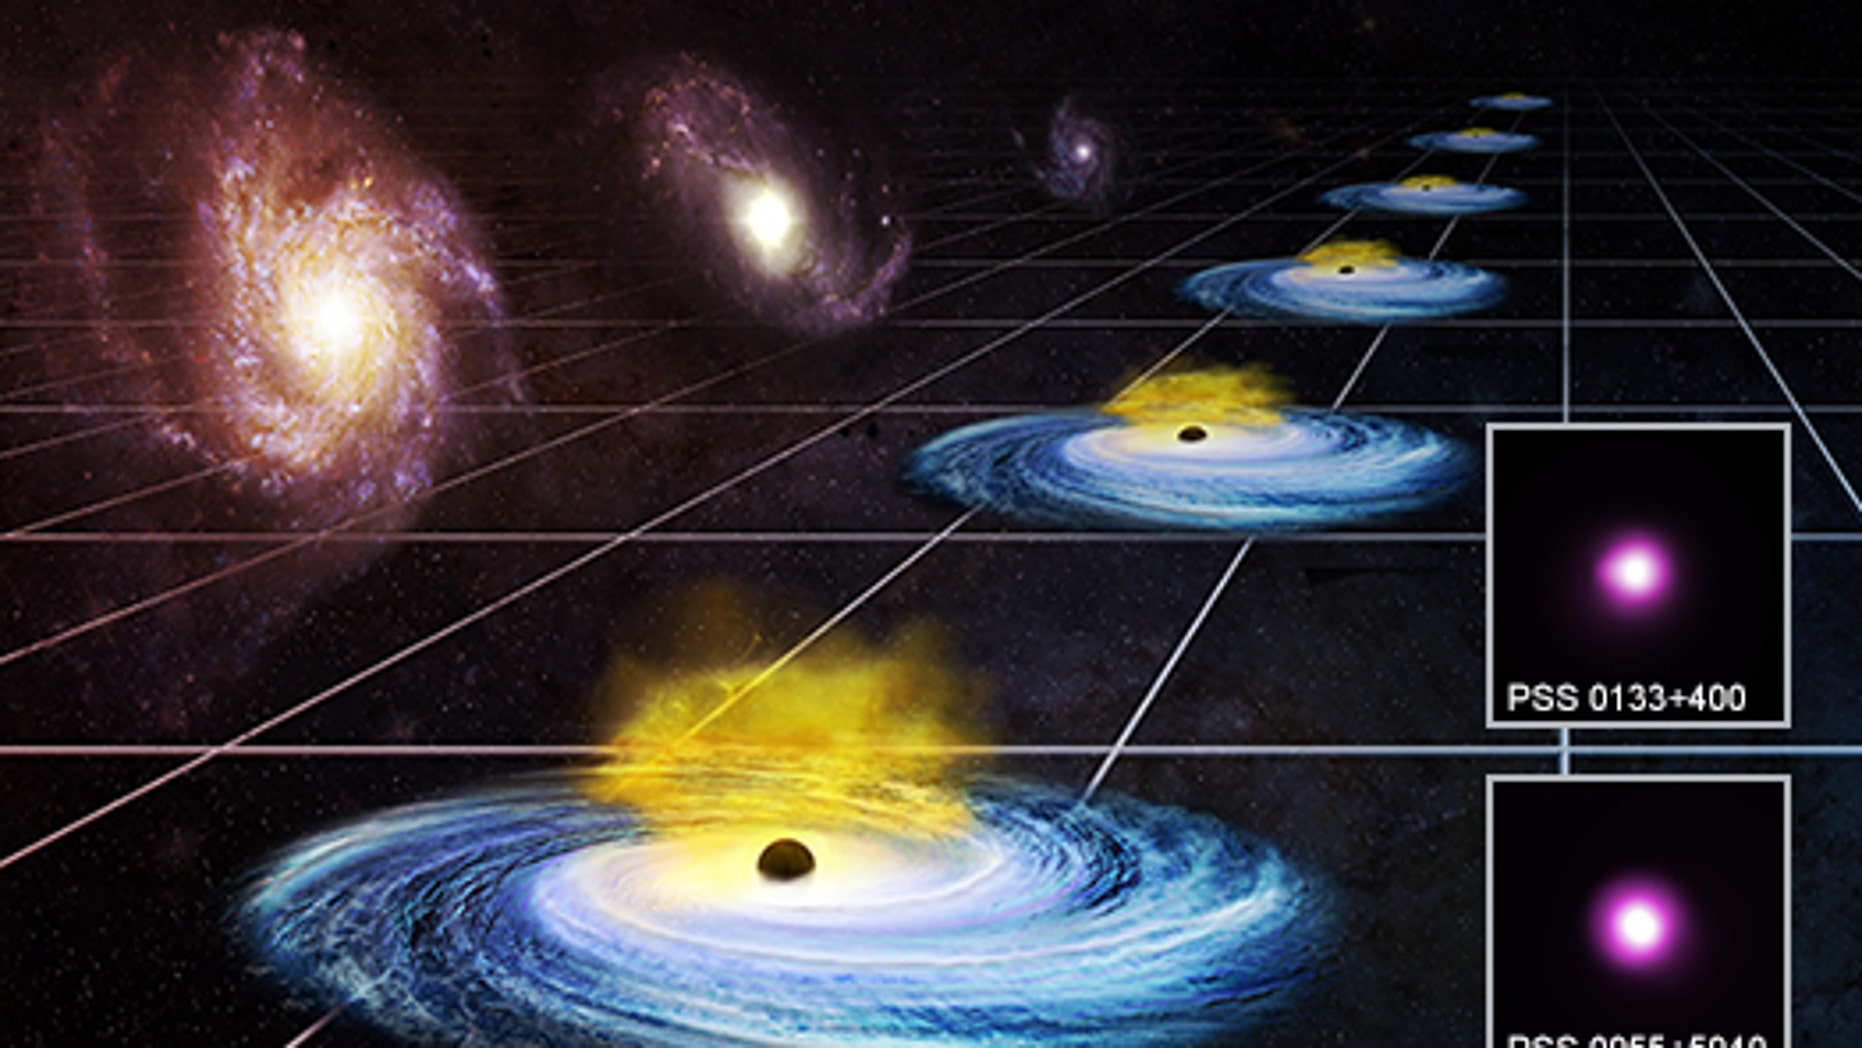 Artist's illustration of quasars, along with observations of two of these superbright objects by NASA's Chandra X-ray Observatory (insets).